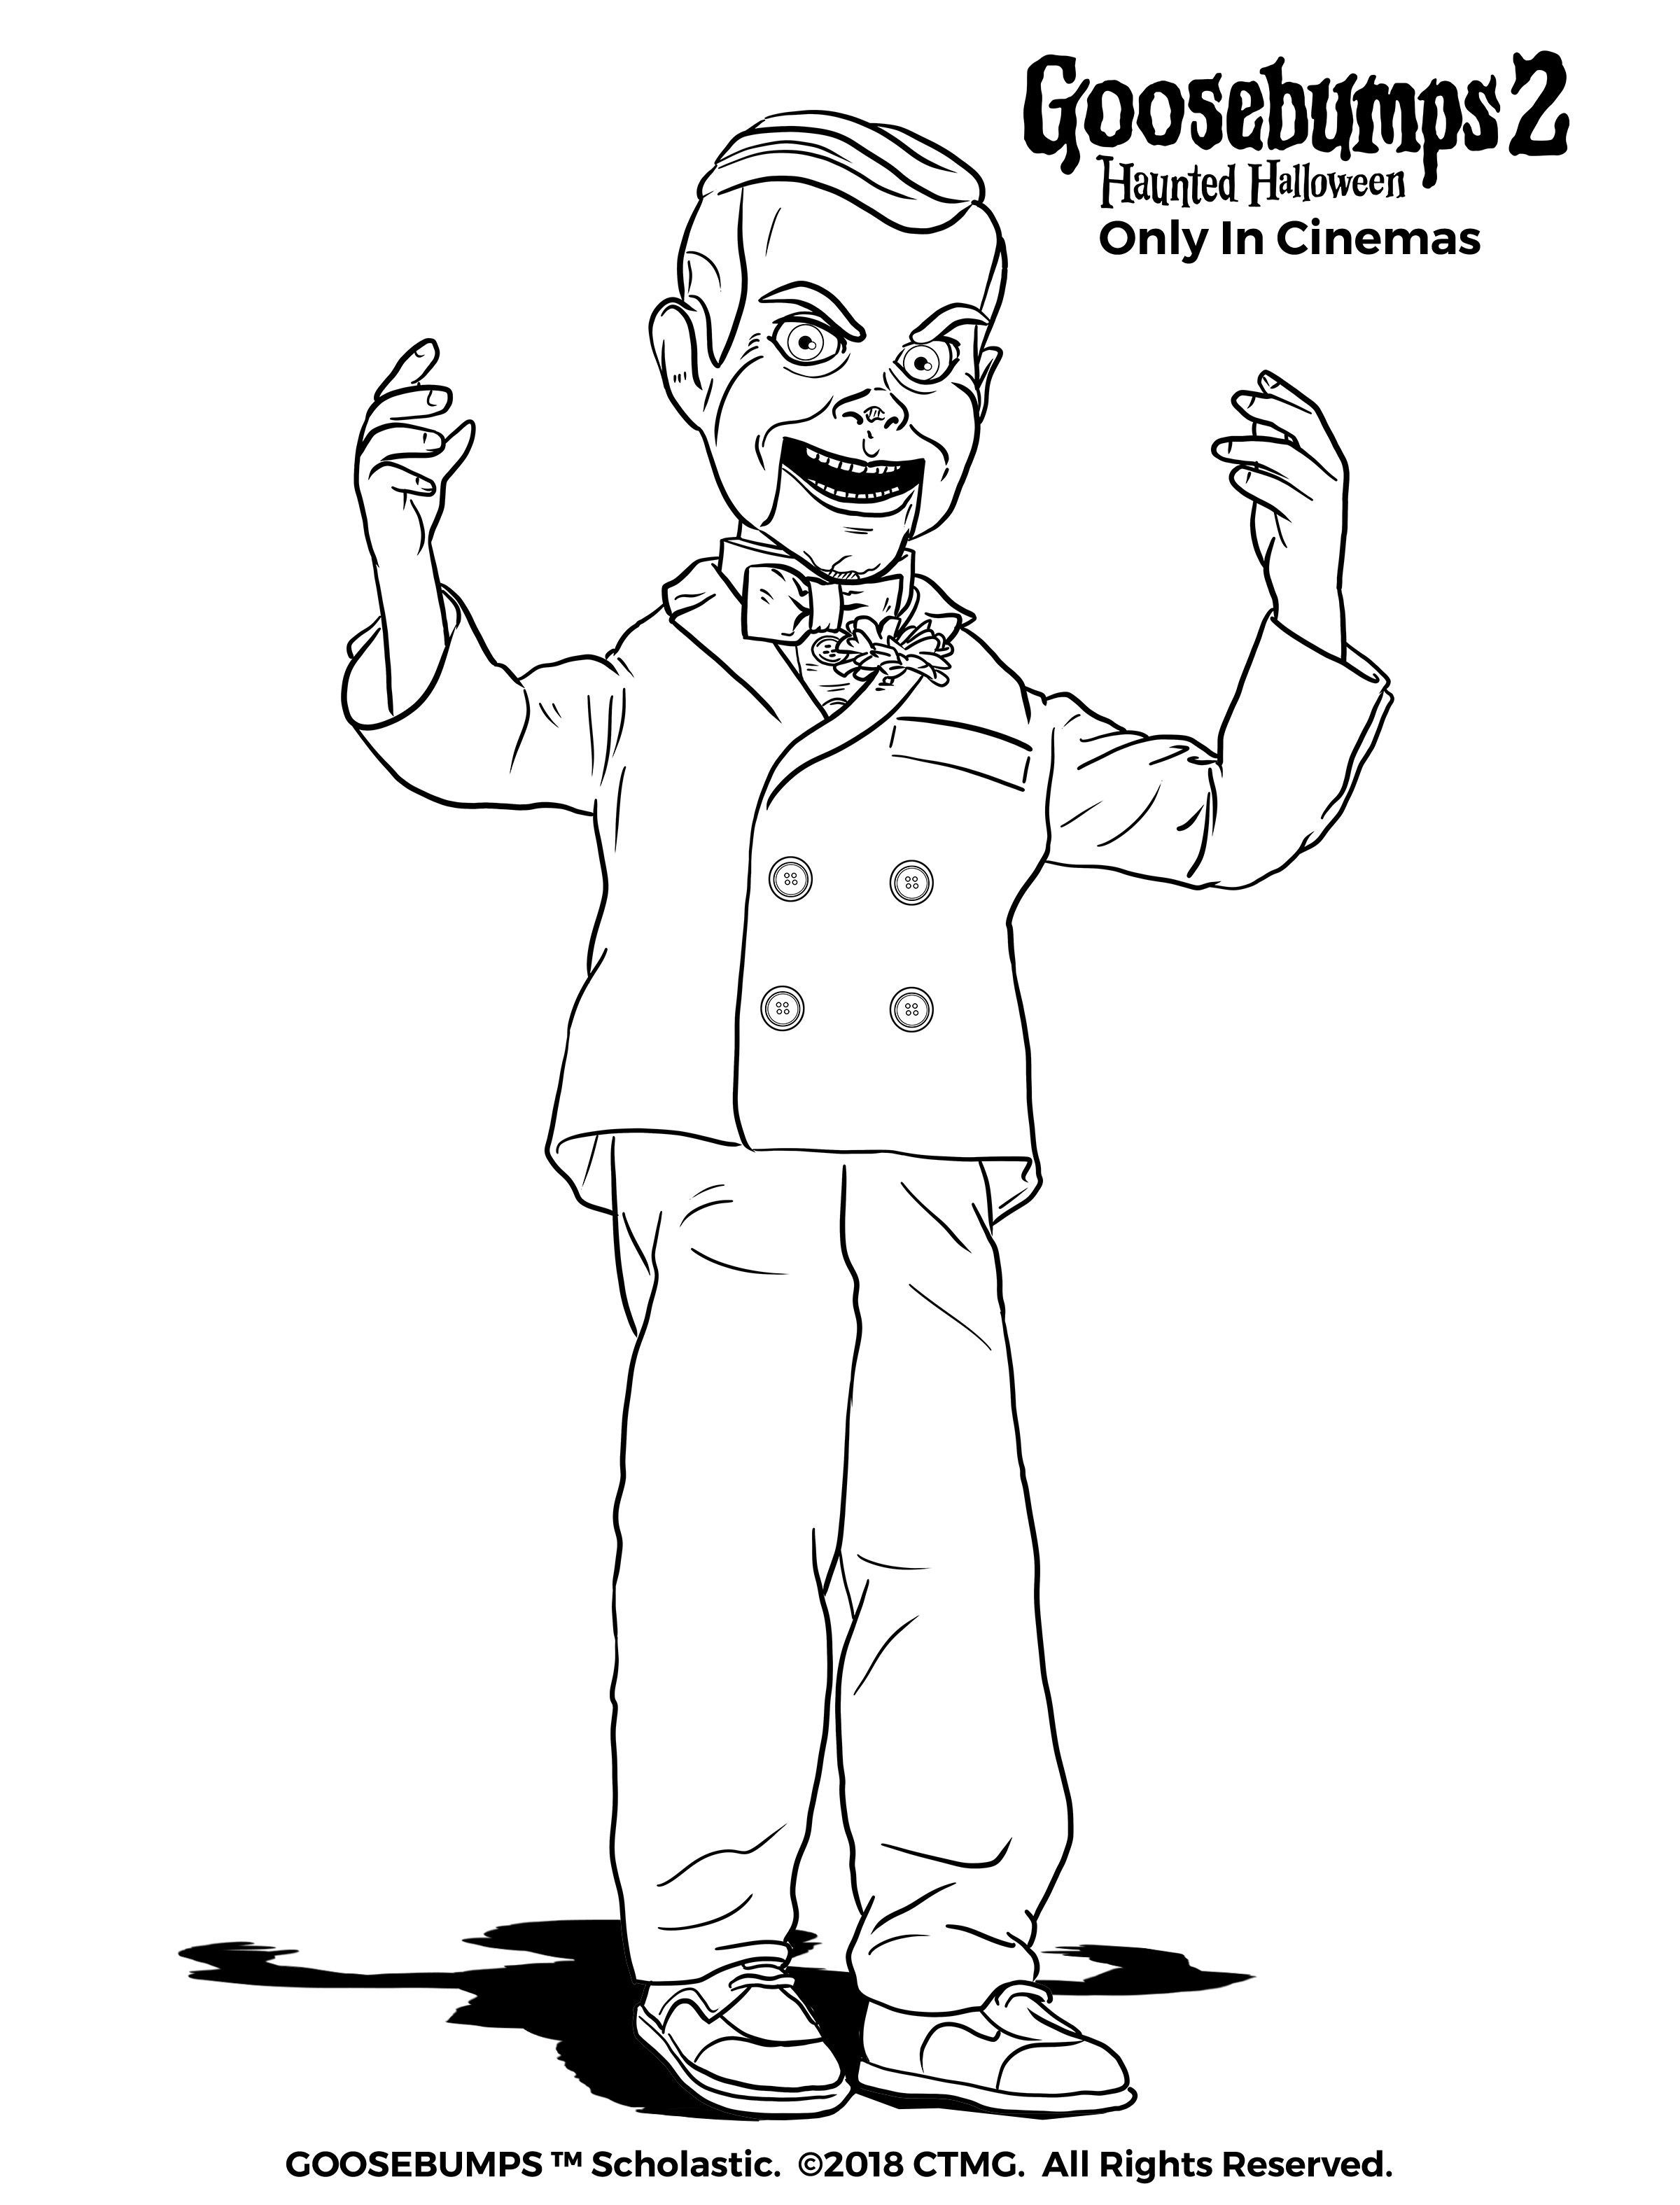 Goosebumps Coloring Pages Coloring Pages Slappy Wants To Play In Goosebumps Coloring Toddler Coloring Book Coloring Pages Spiderman Coloring